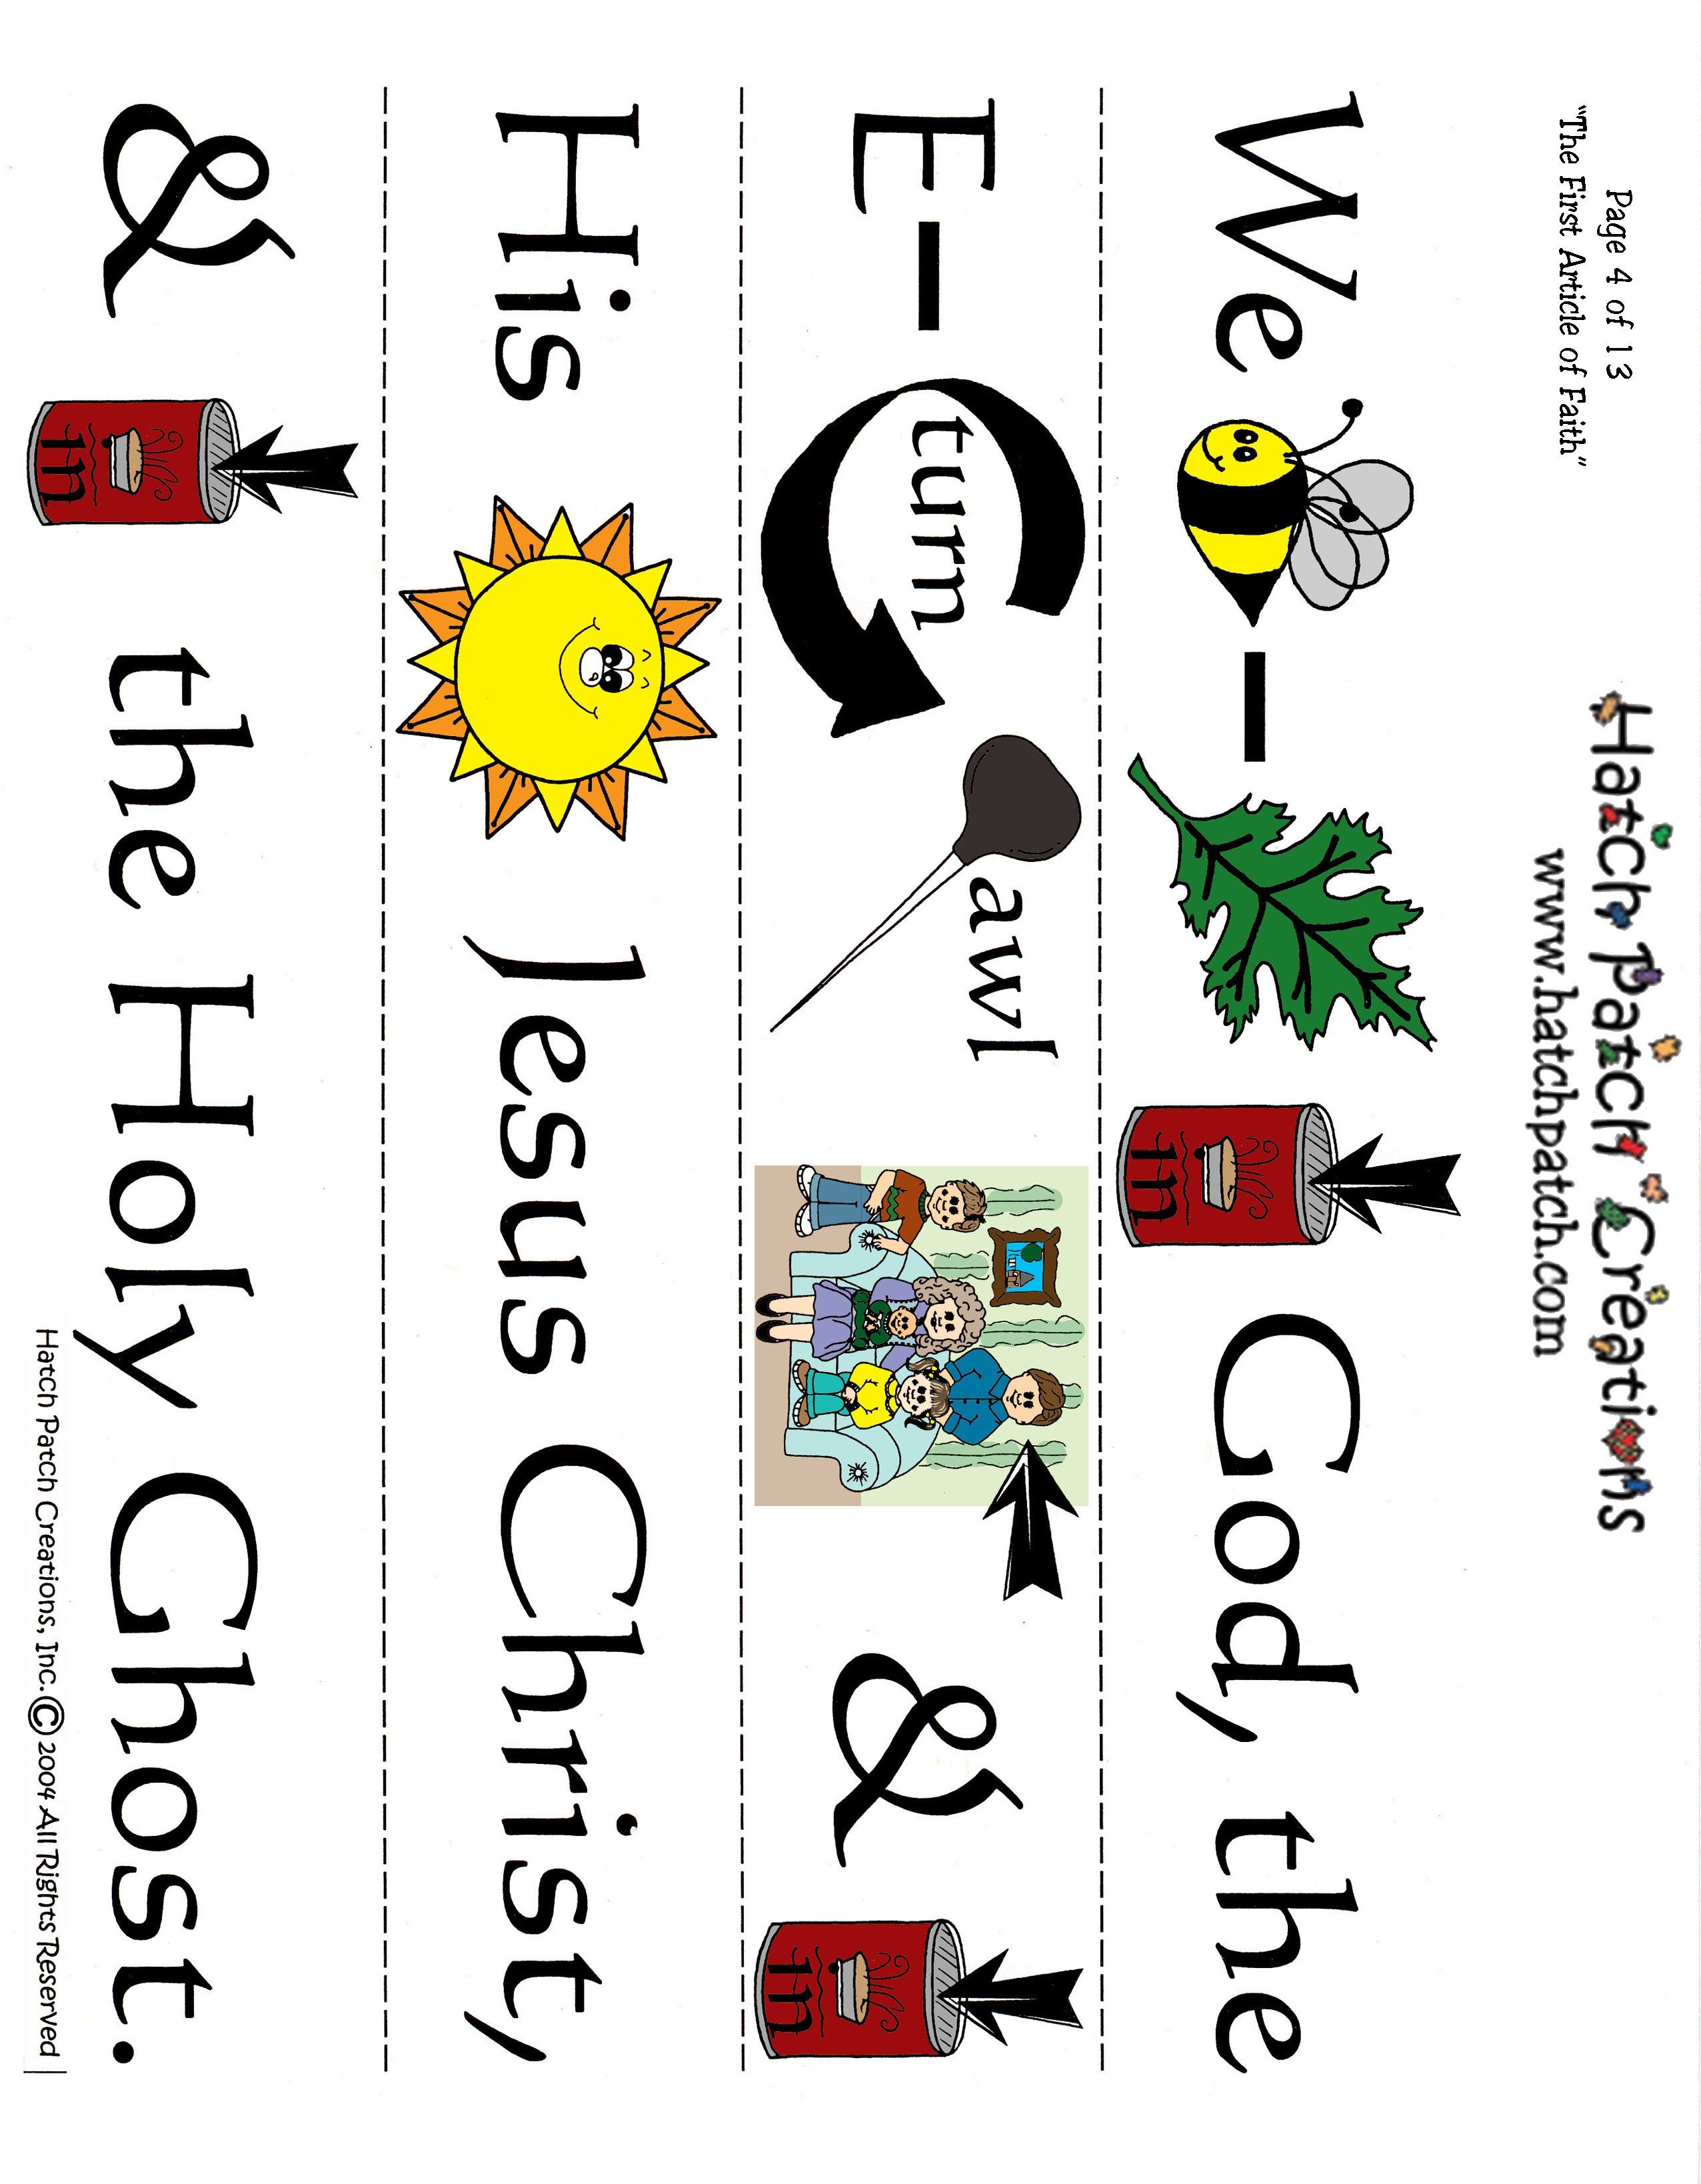 hight resolution of first article of faith wordstrip mormon share this mormon pin is loved at www mormonlink com